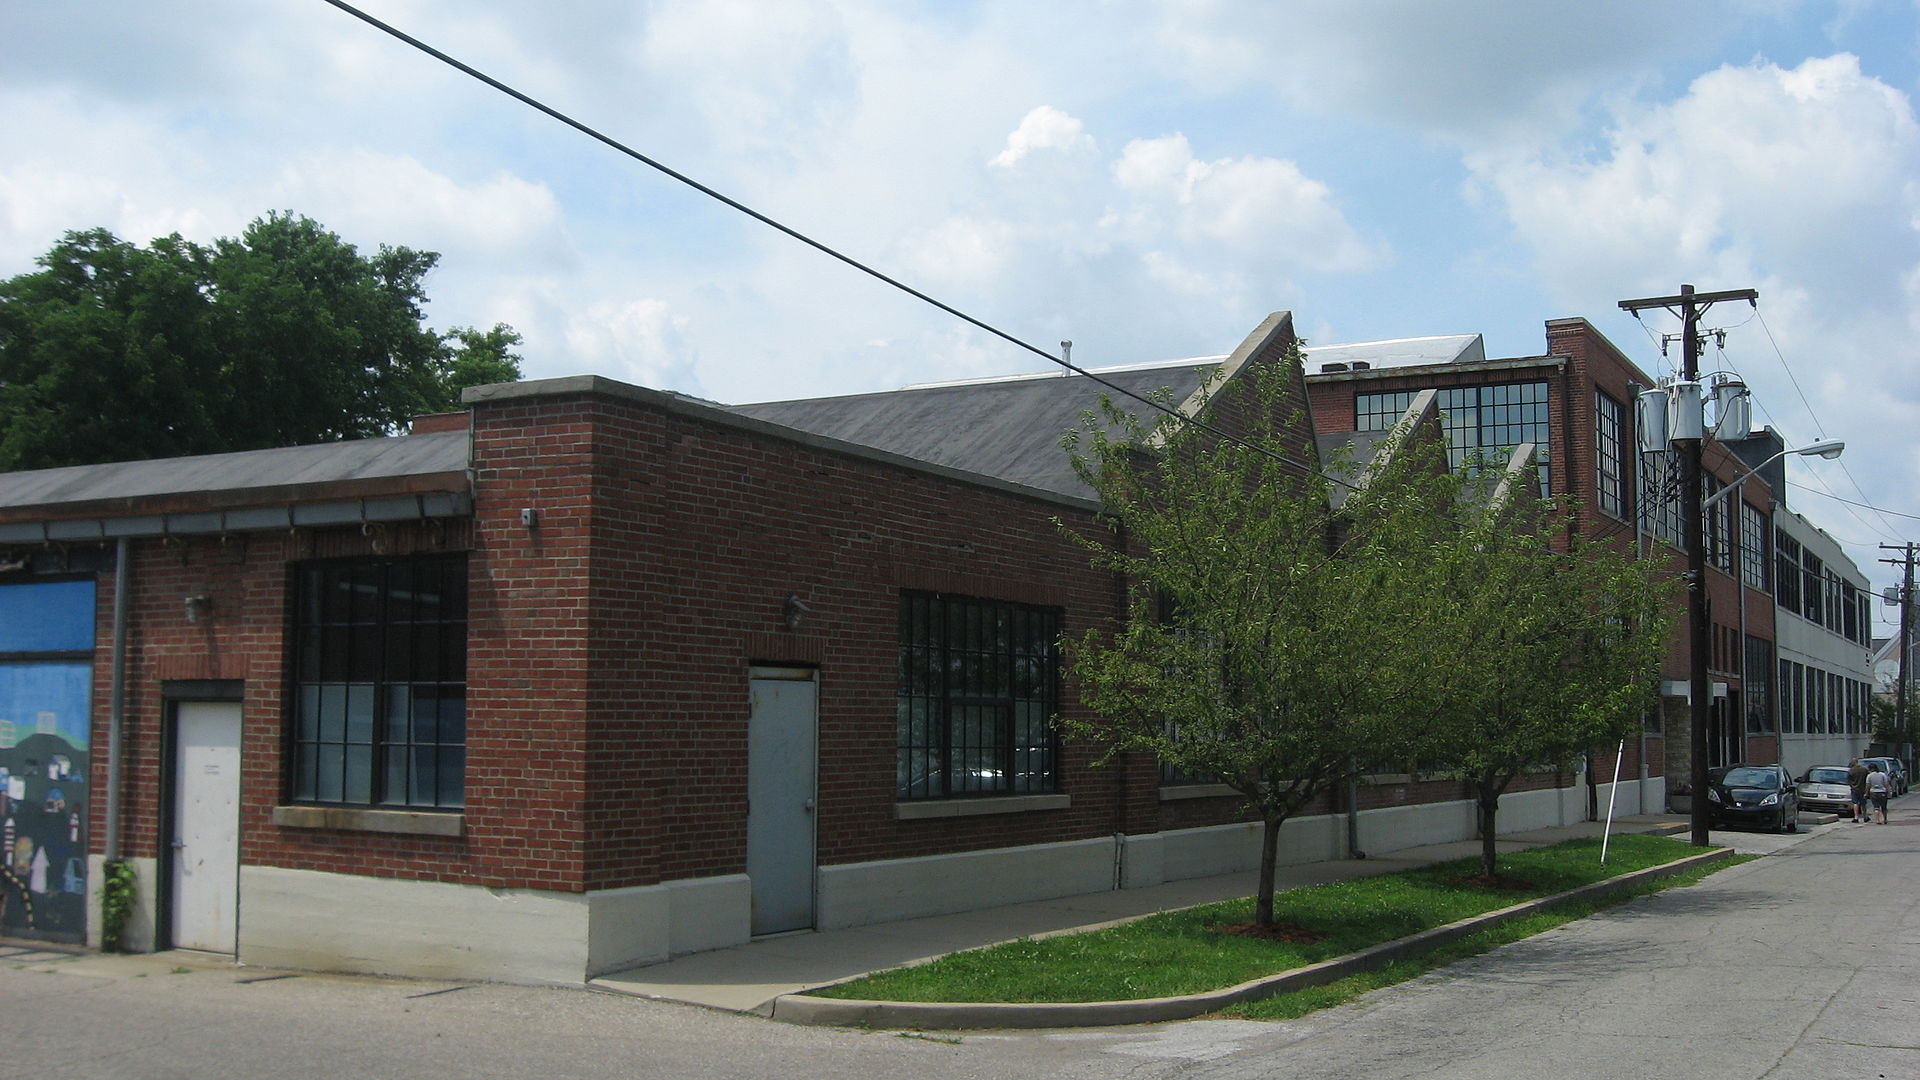 The Wheeler—Schebler Carburetor Company Building as it looks today